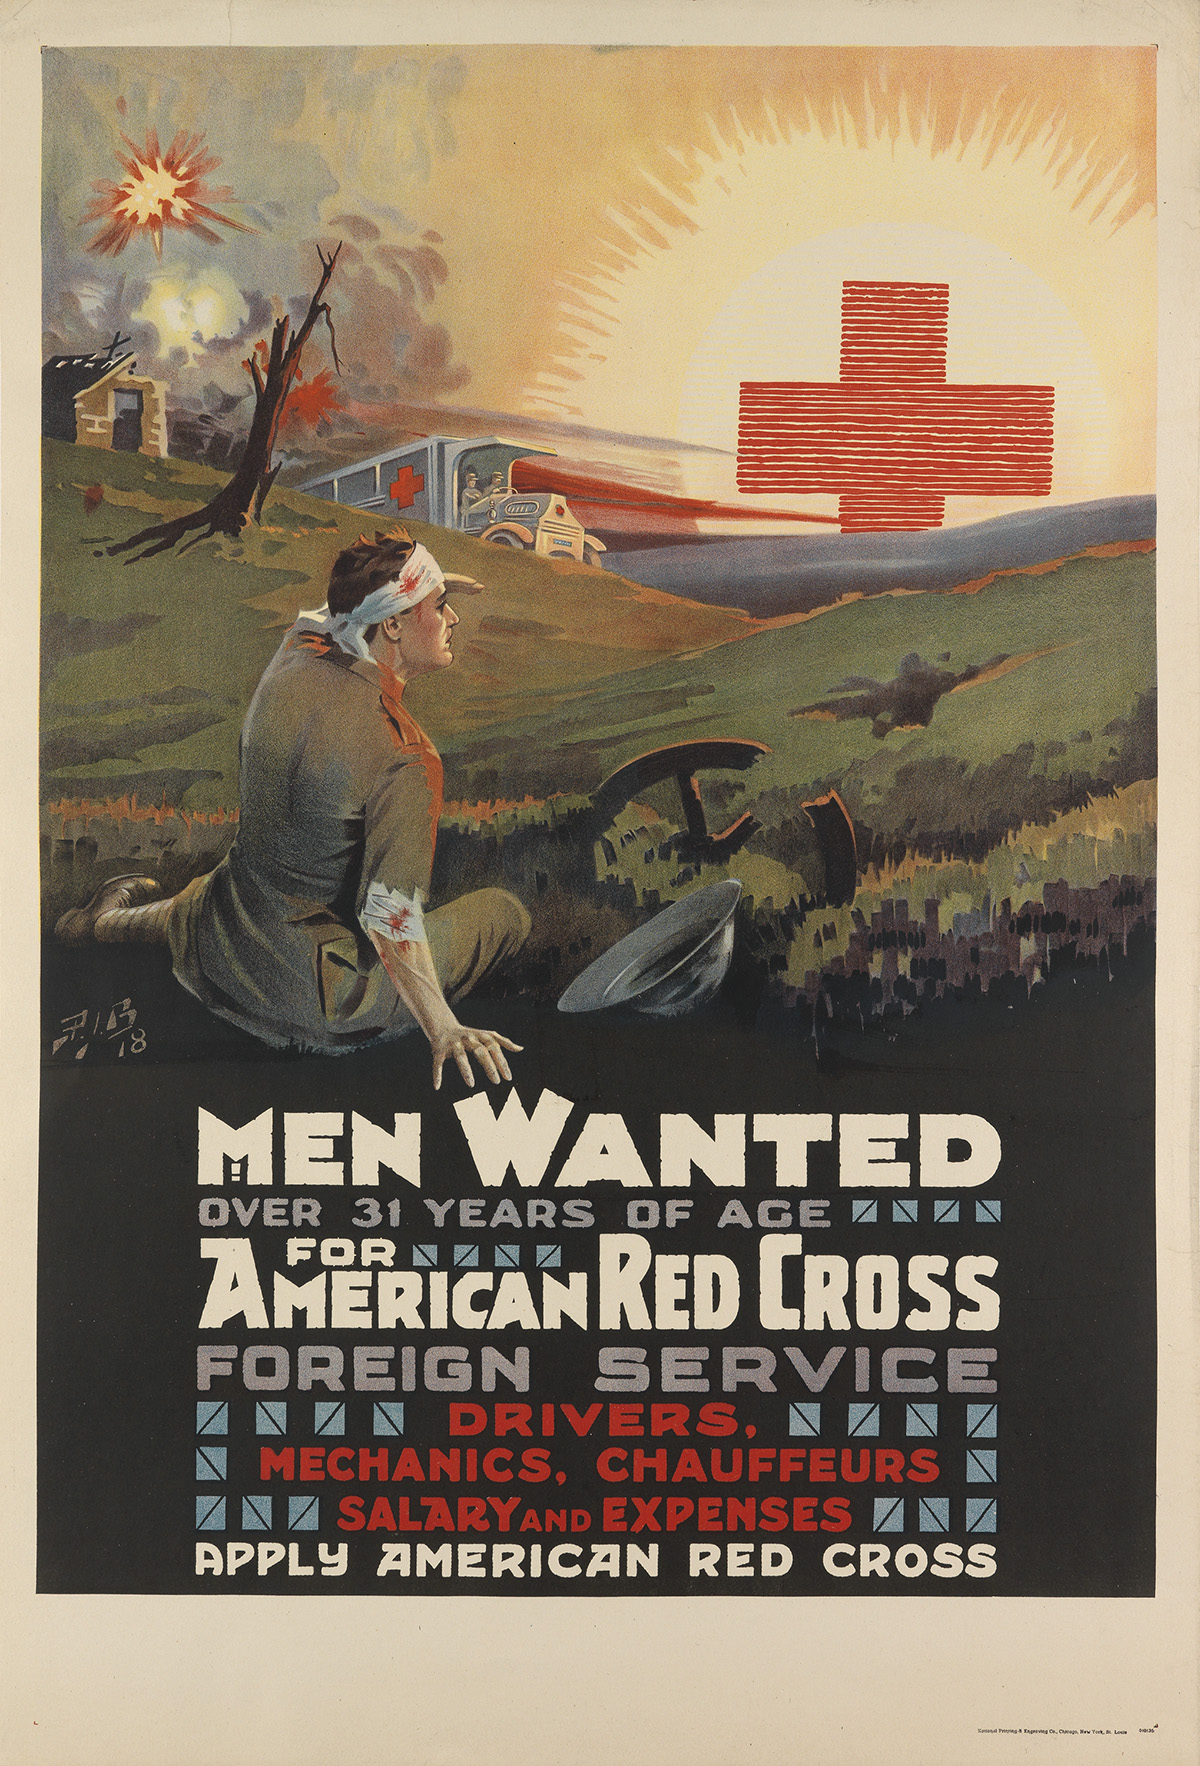 PIB-(MONOGRAM-UNKNOWN)-MEN-WANTED-FOR-AMERICAN-RED-CROSS-FOR